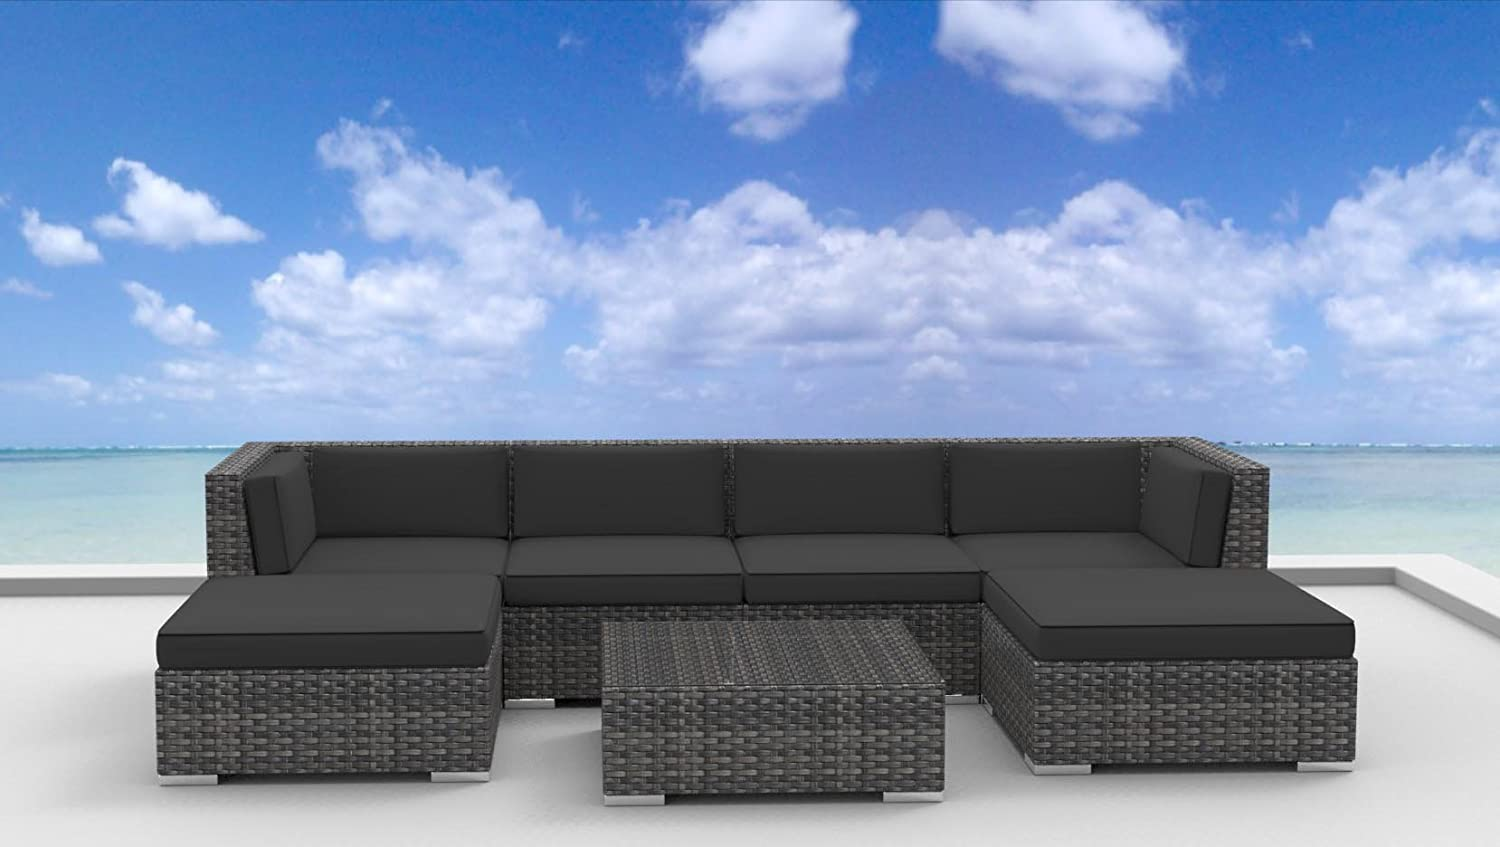 www.urbanfurnishing.net Urban Furnishing - MAUI 7pc Modern Outdoor Backyard Wicker Rattan Patio Furniture Sofa Sectional Couch Set - Charcoal at Sears.com